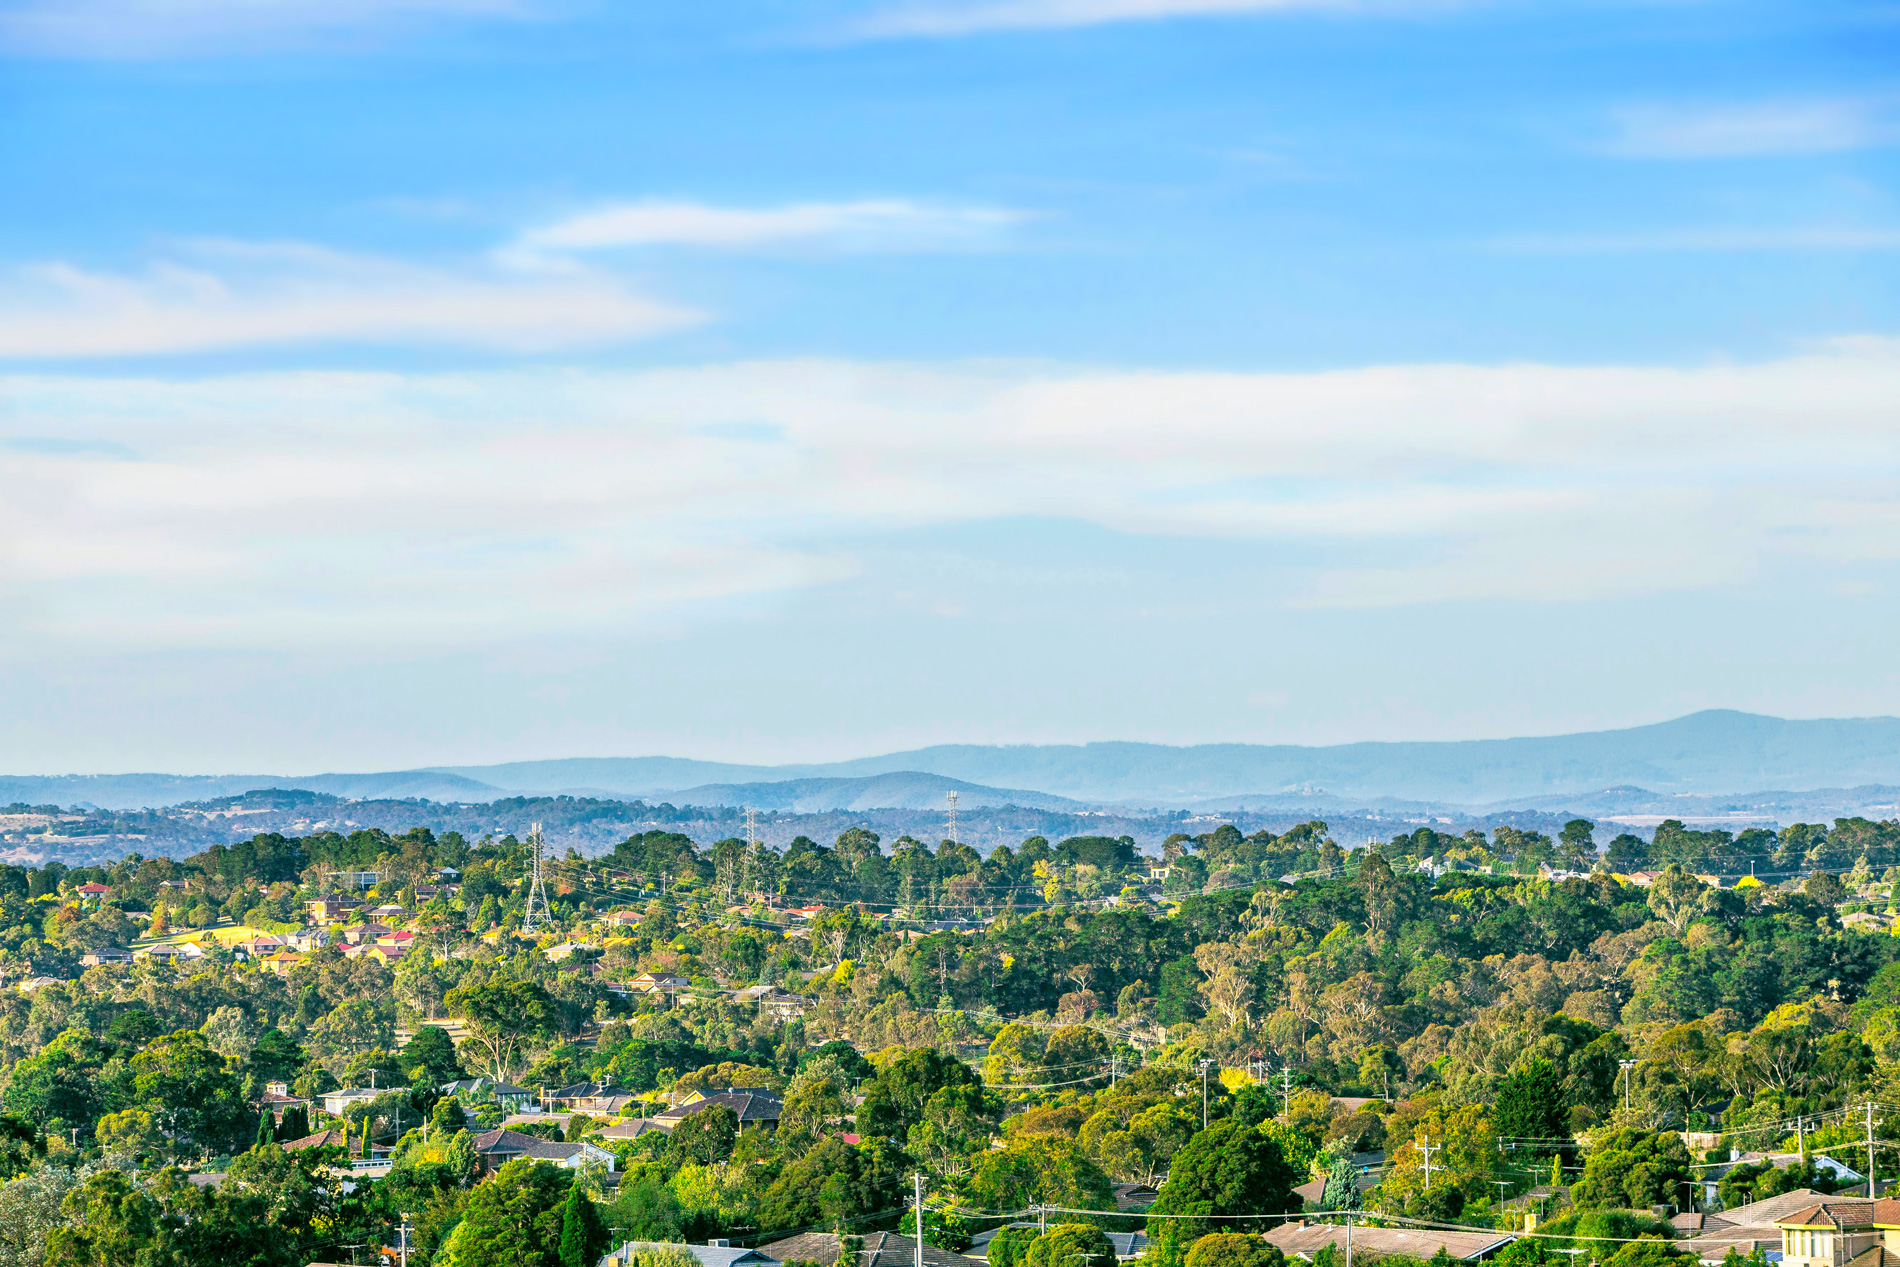 View towards Dandenong Ranges